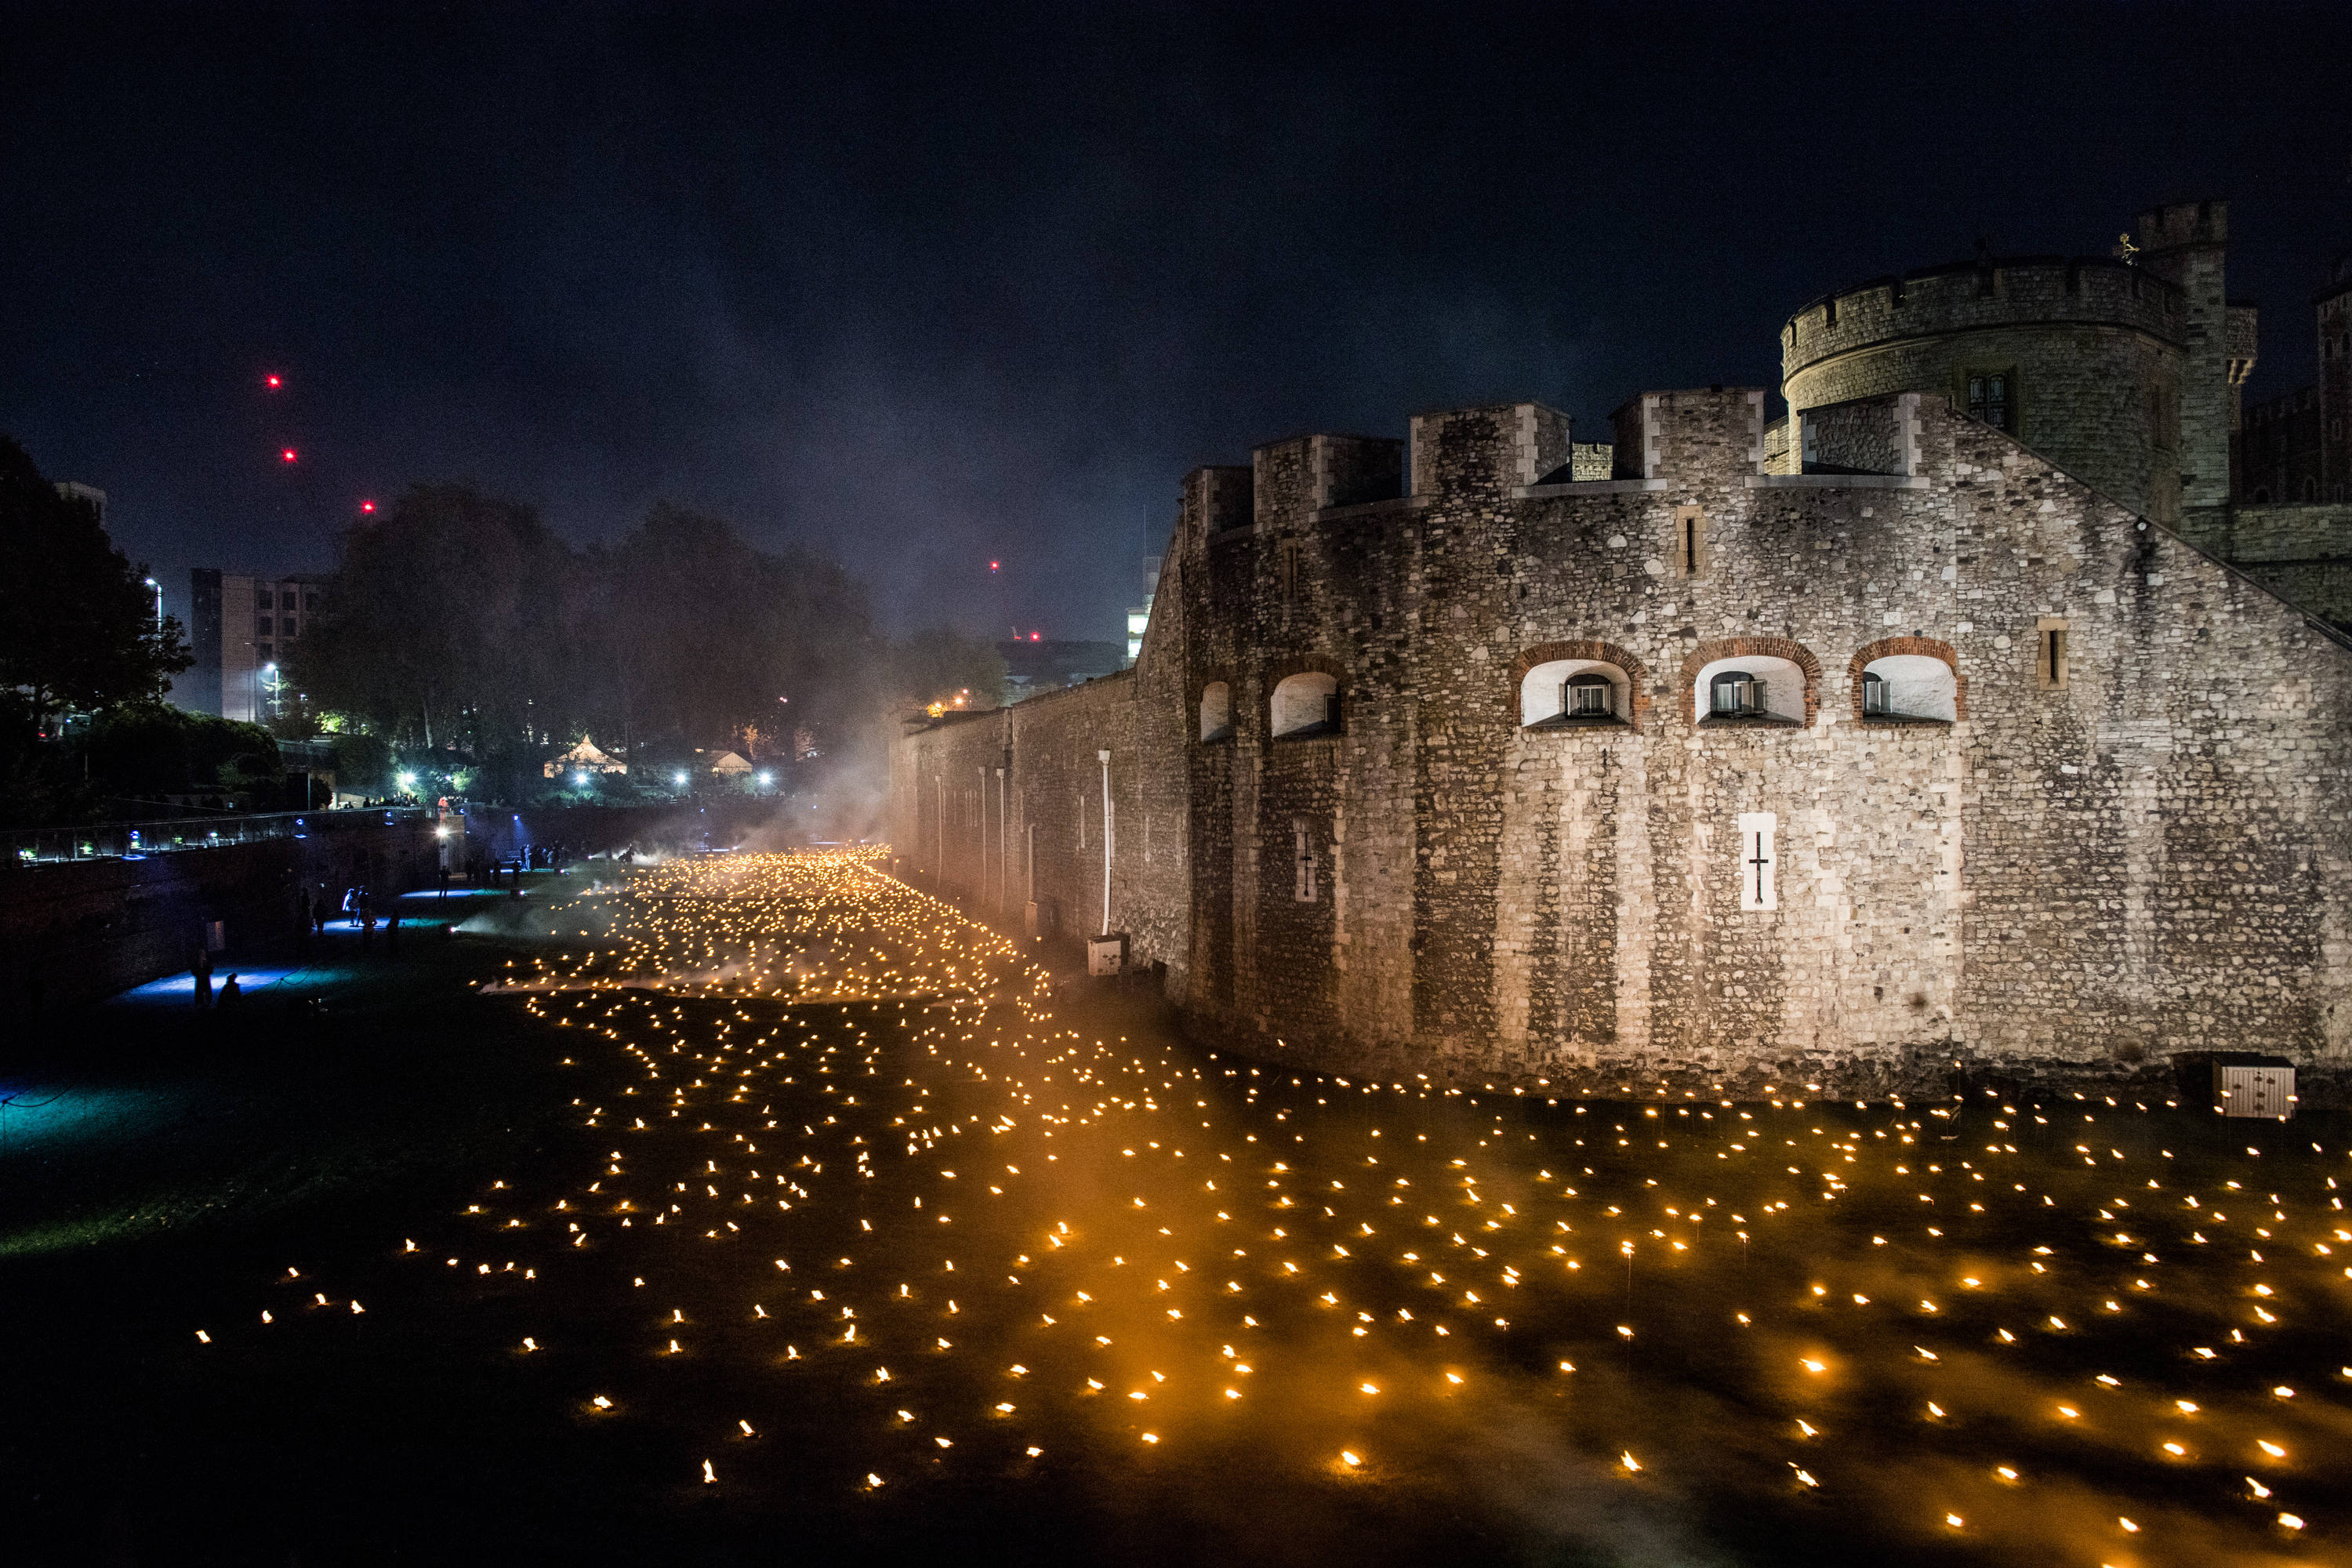 A remembrance display outside the Tower of London